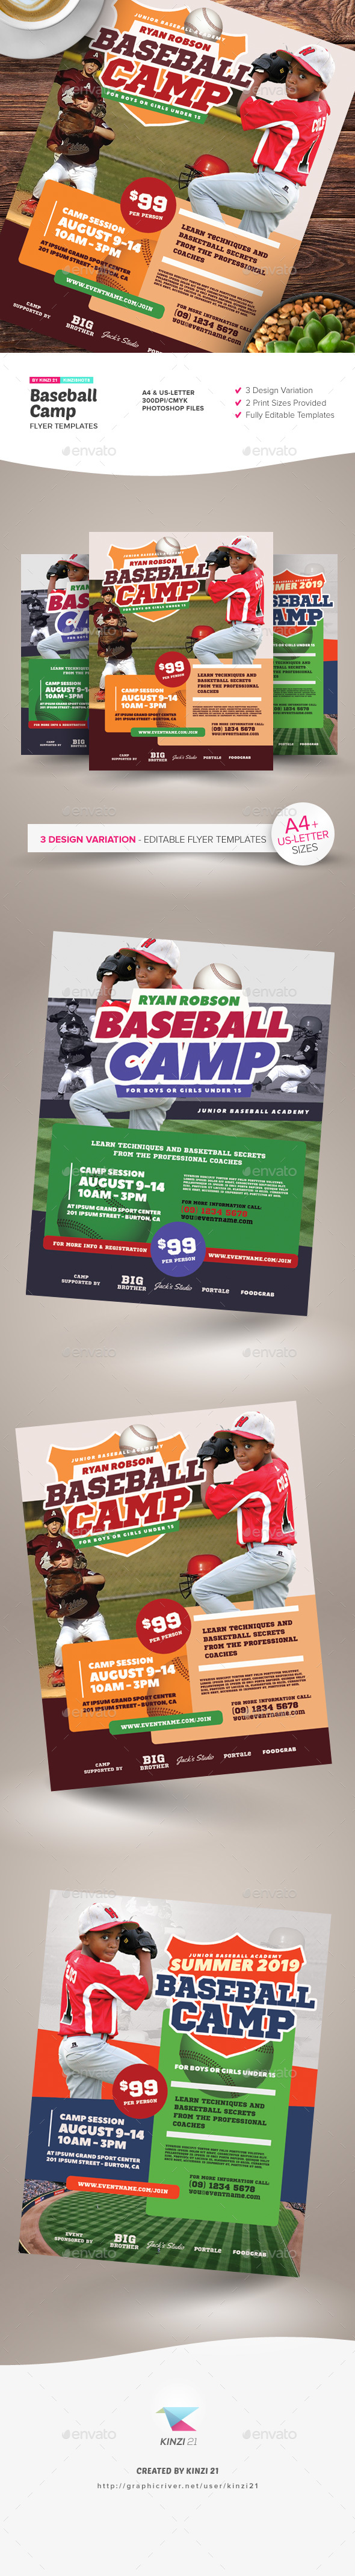 Softball Flyer Graphics Designs Templates From Graphicriver Jpg 590x4286 Photo Baseball Collage Design Sports